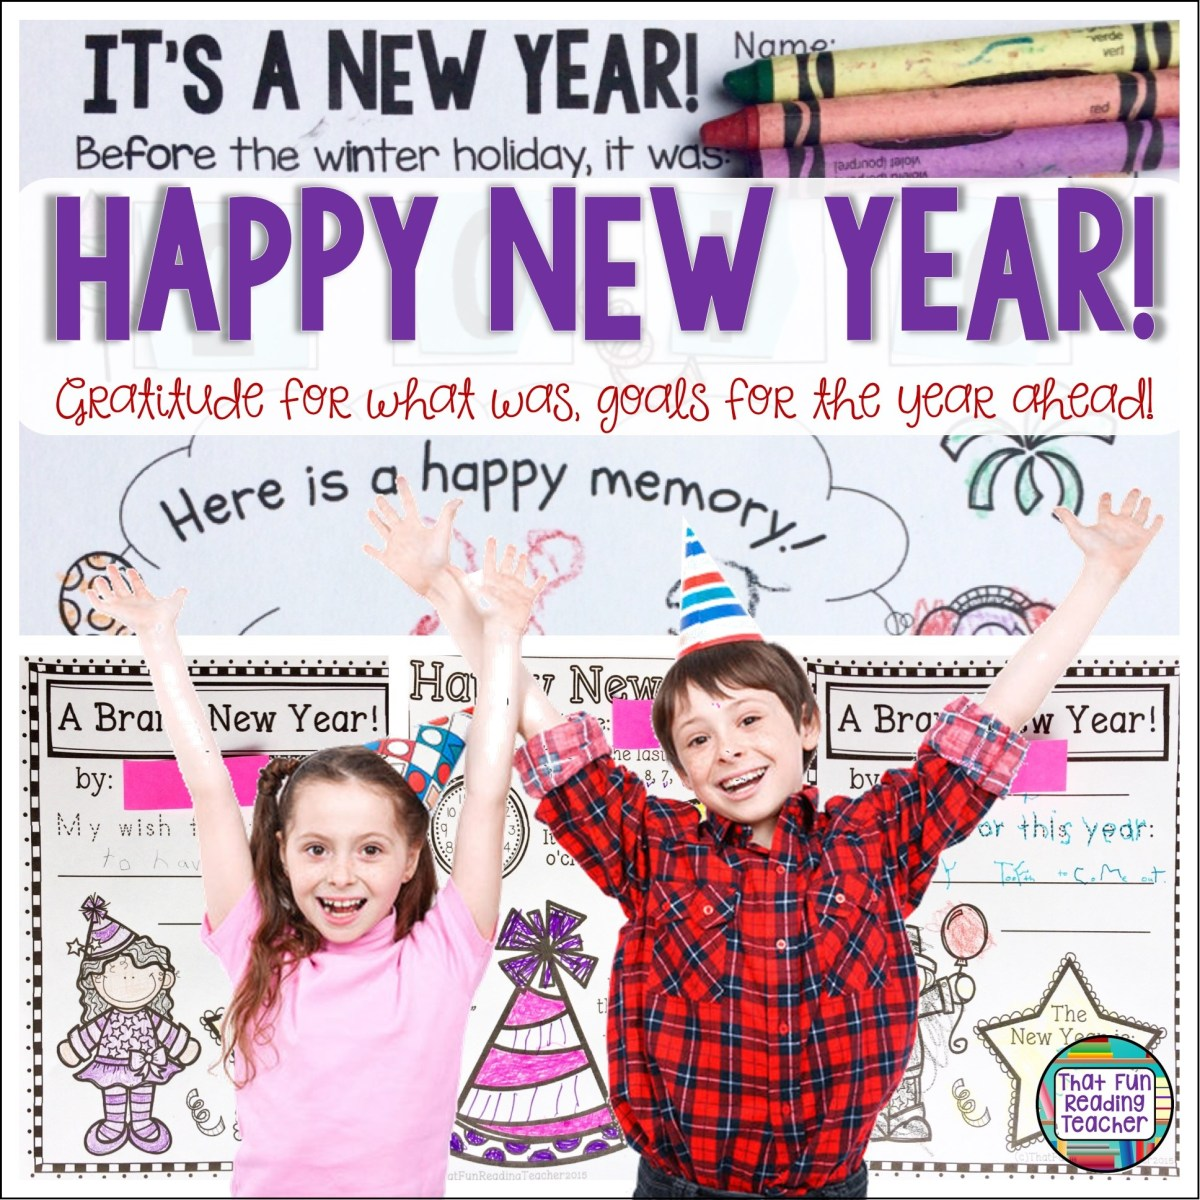 Happy New Year: Gratitude for what was, goals for the year ahead!